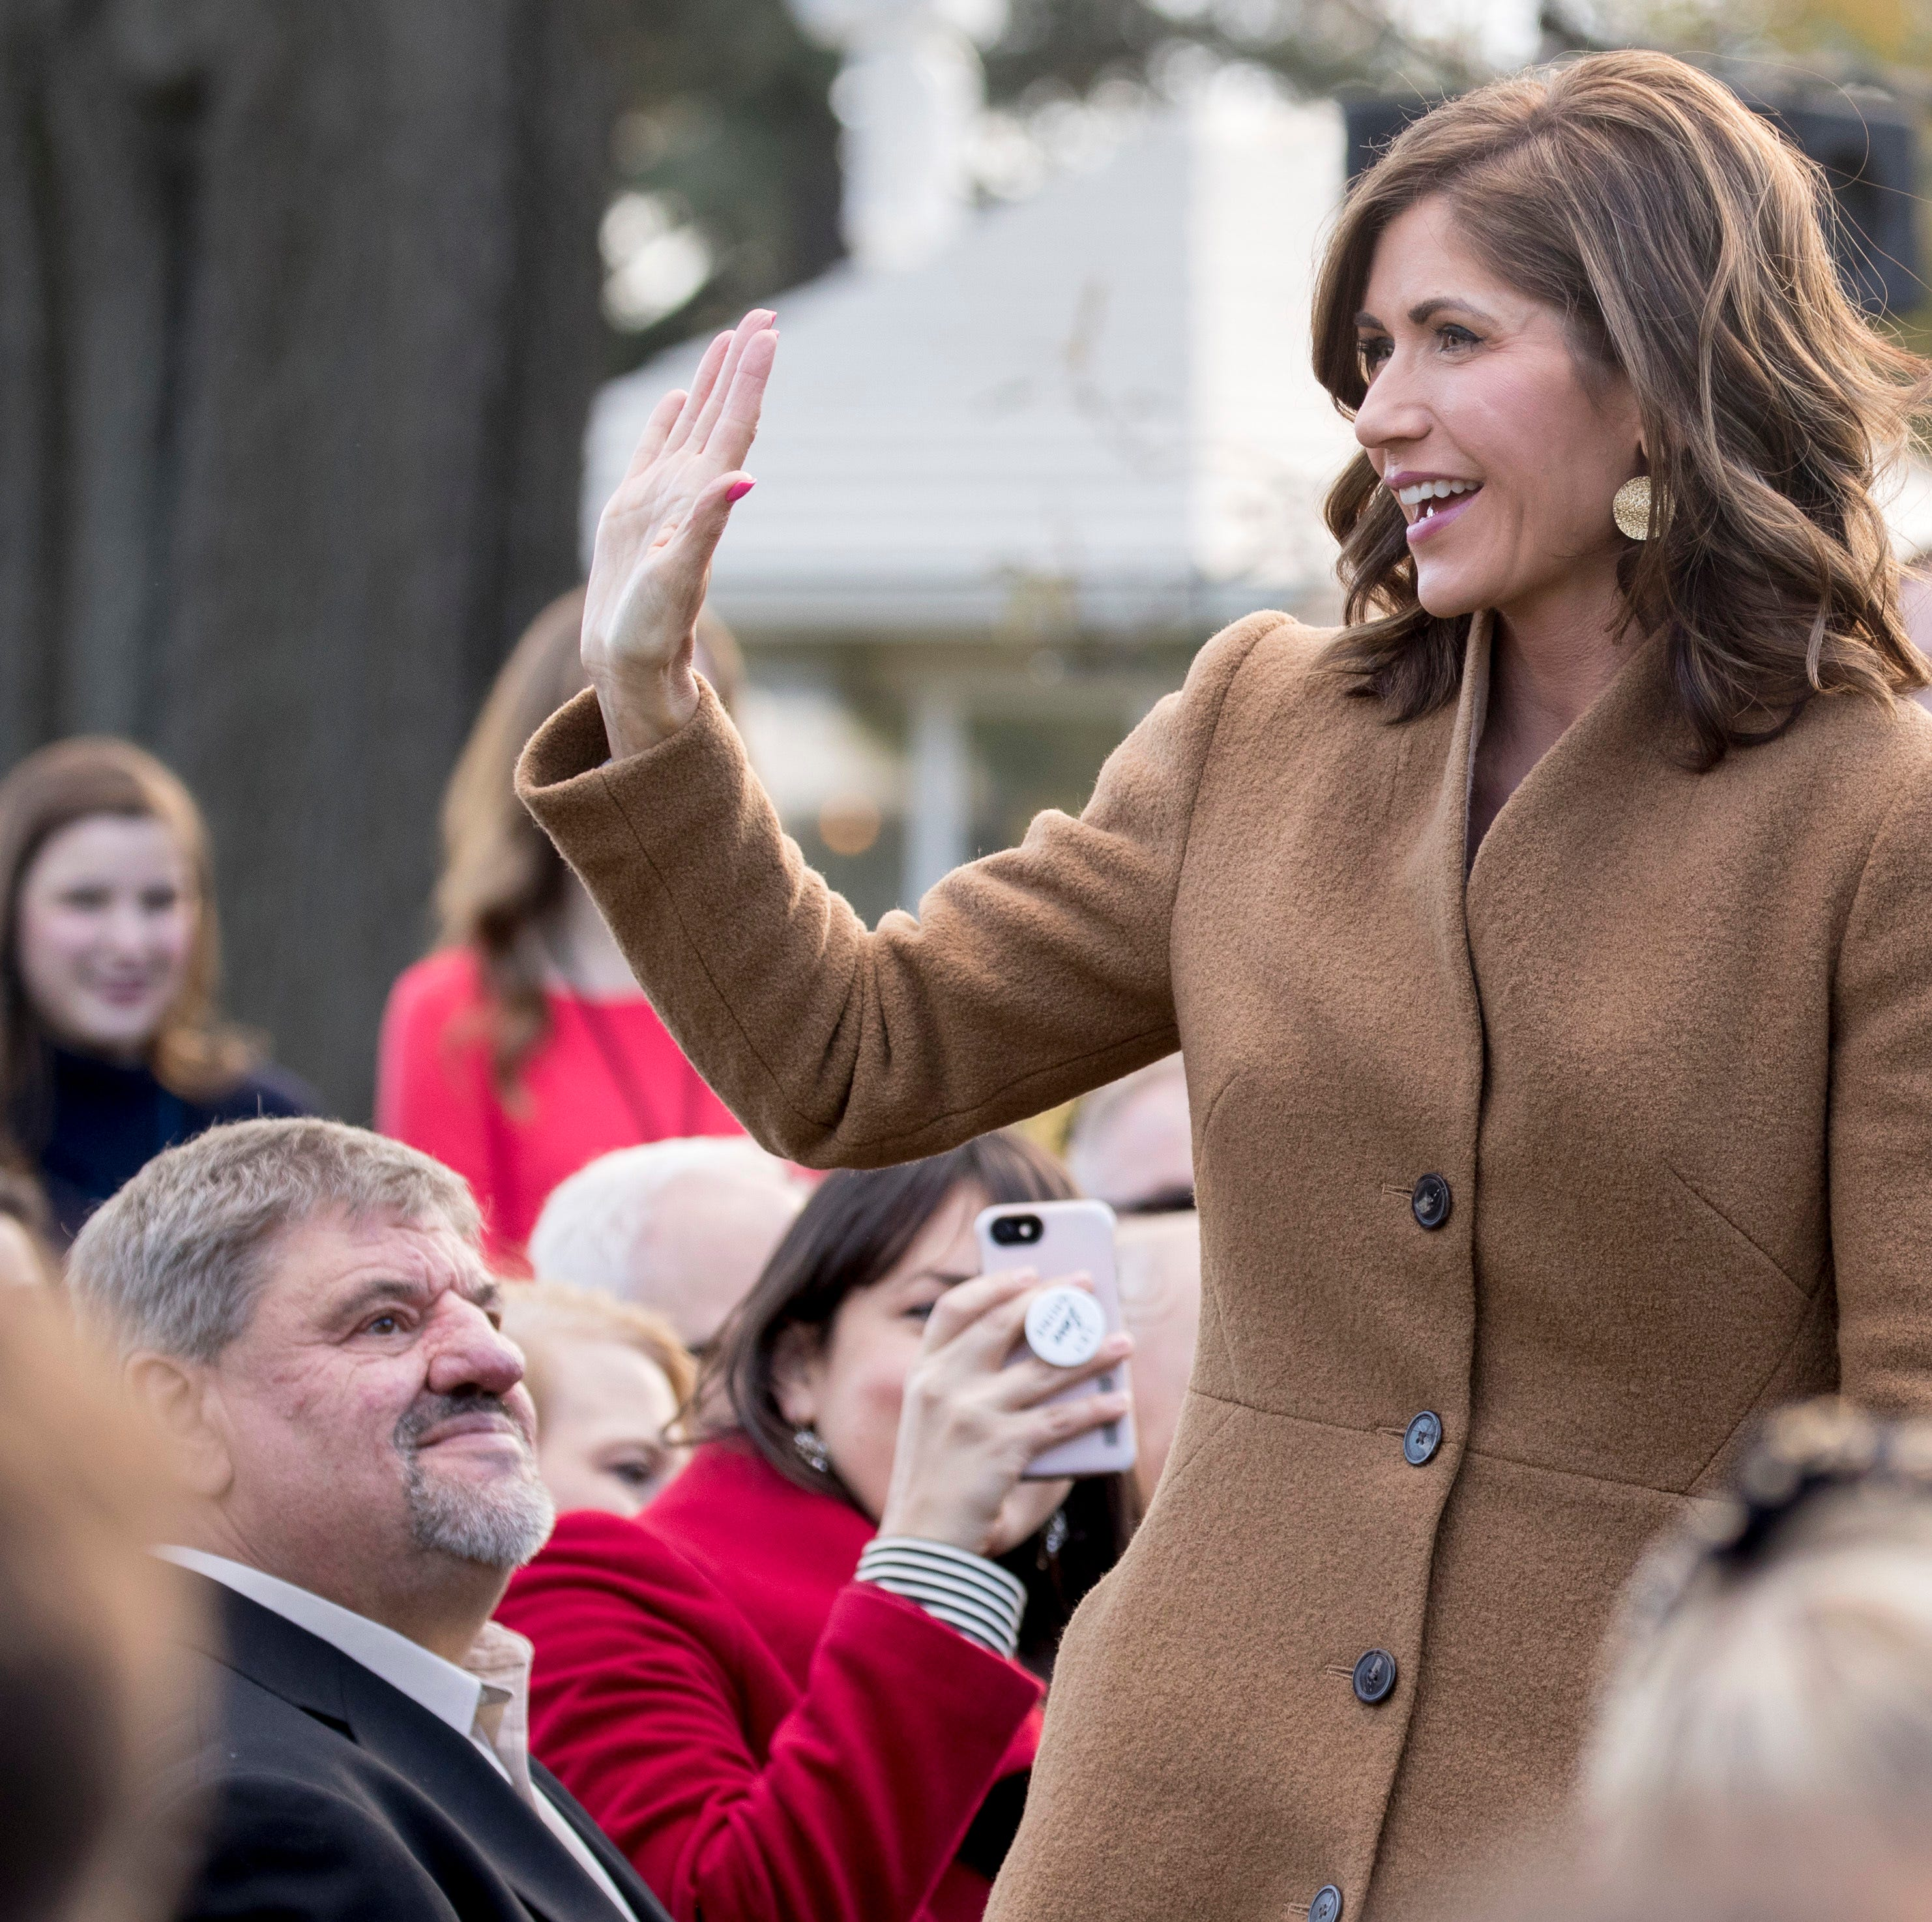 Yes, it's legal for Kristi Noem to hire her daughter to work in the governor's office